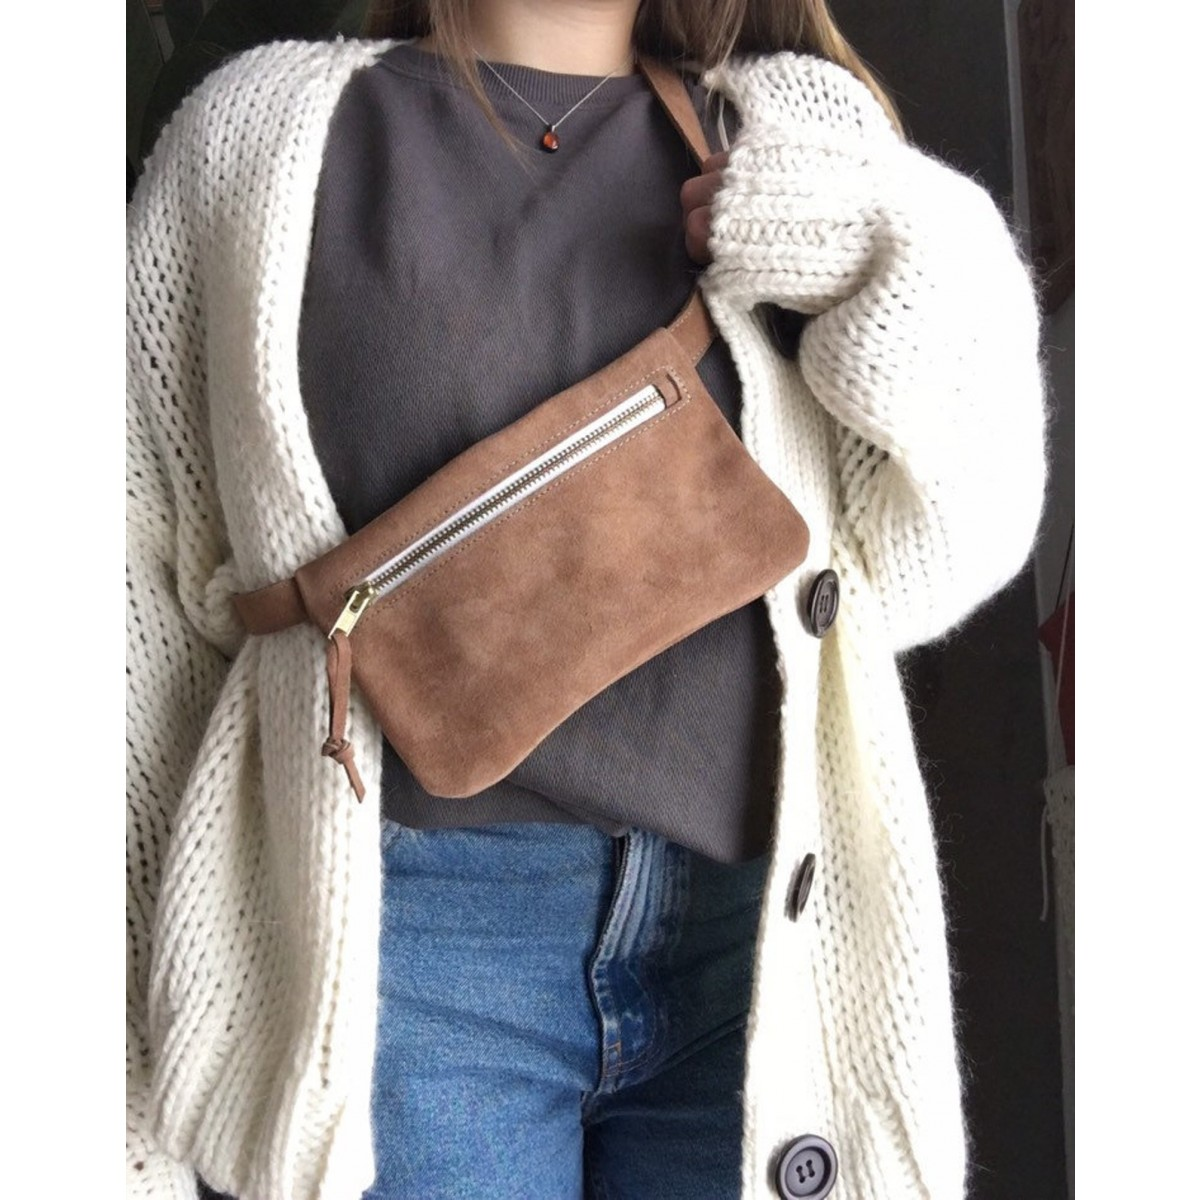 Fanny Pack // Beige Gürteltasche // Wildleder Hüfttasche // suede Leather Hip Bag // Crossbody Bag // Festival Tasche // boho // tumblr